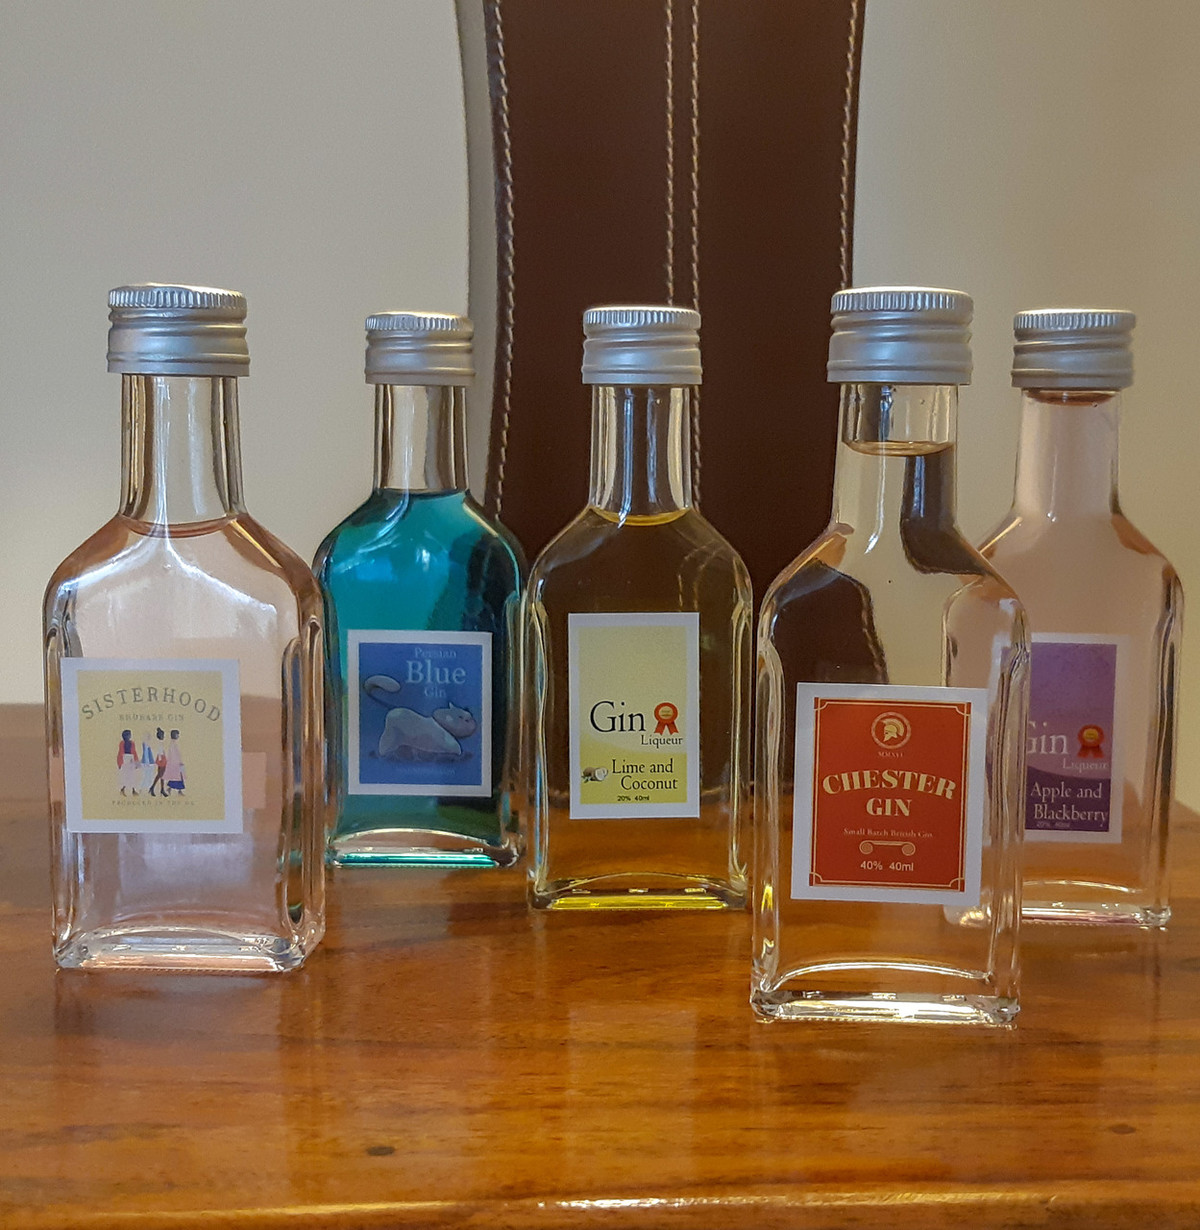 Try before you buy miniature gins